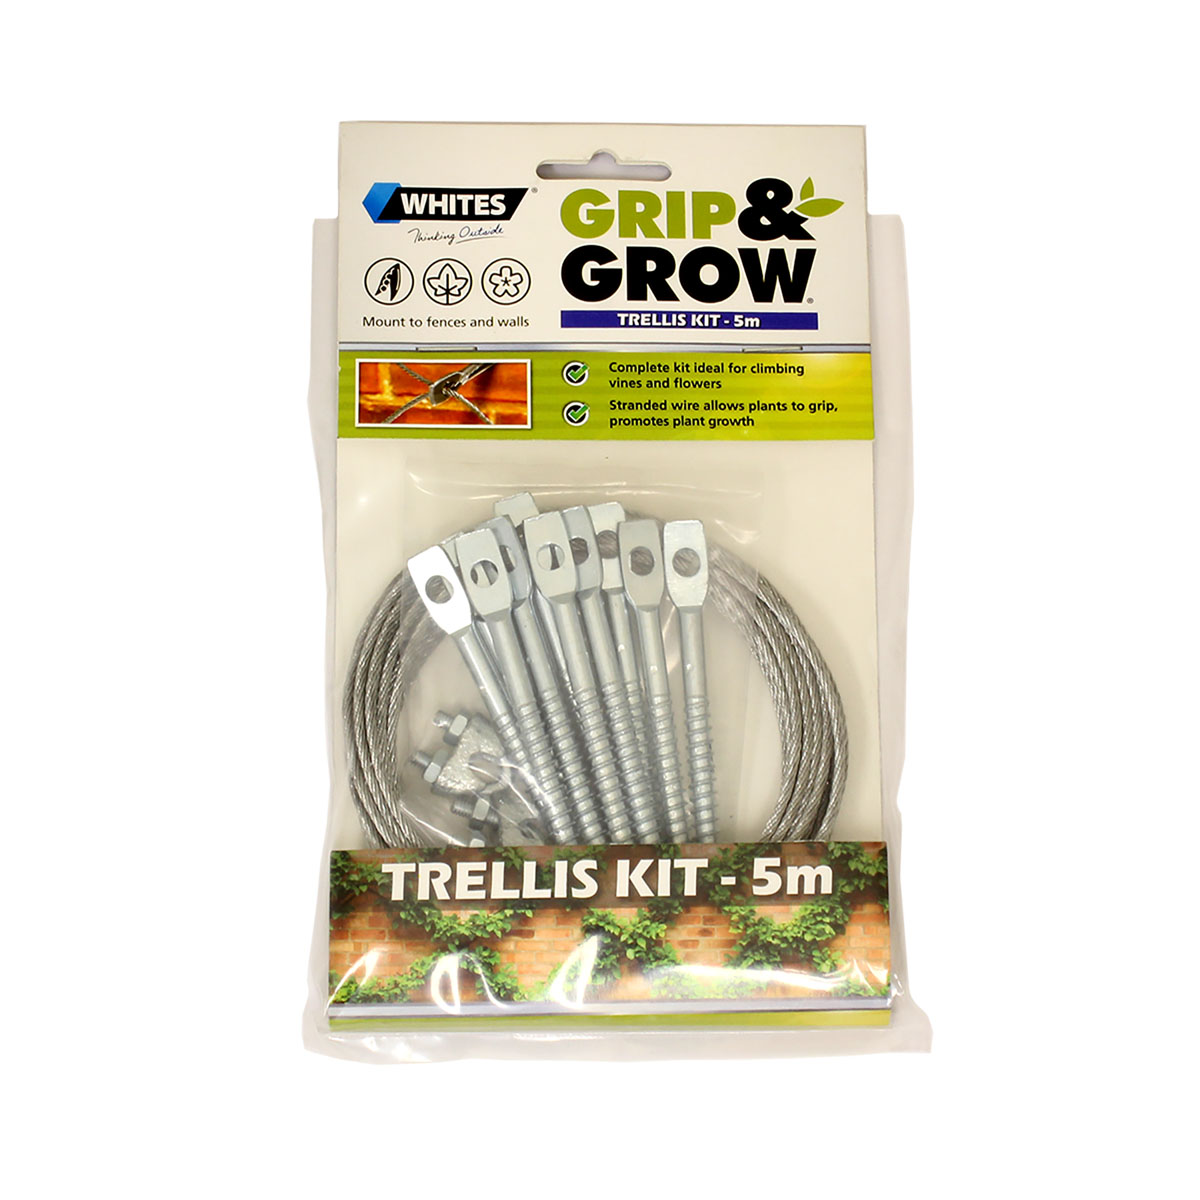 18271 - Grip & Grow Trellis Kit